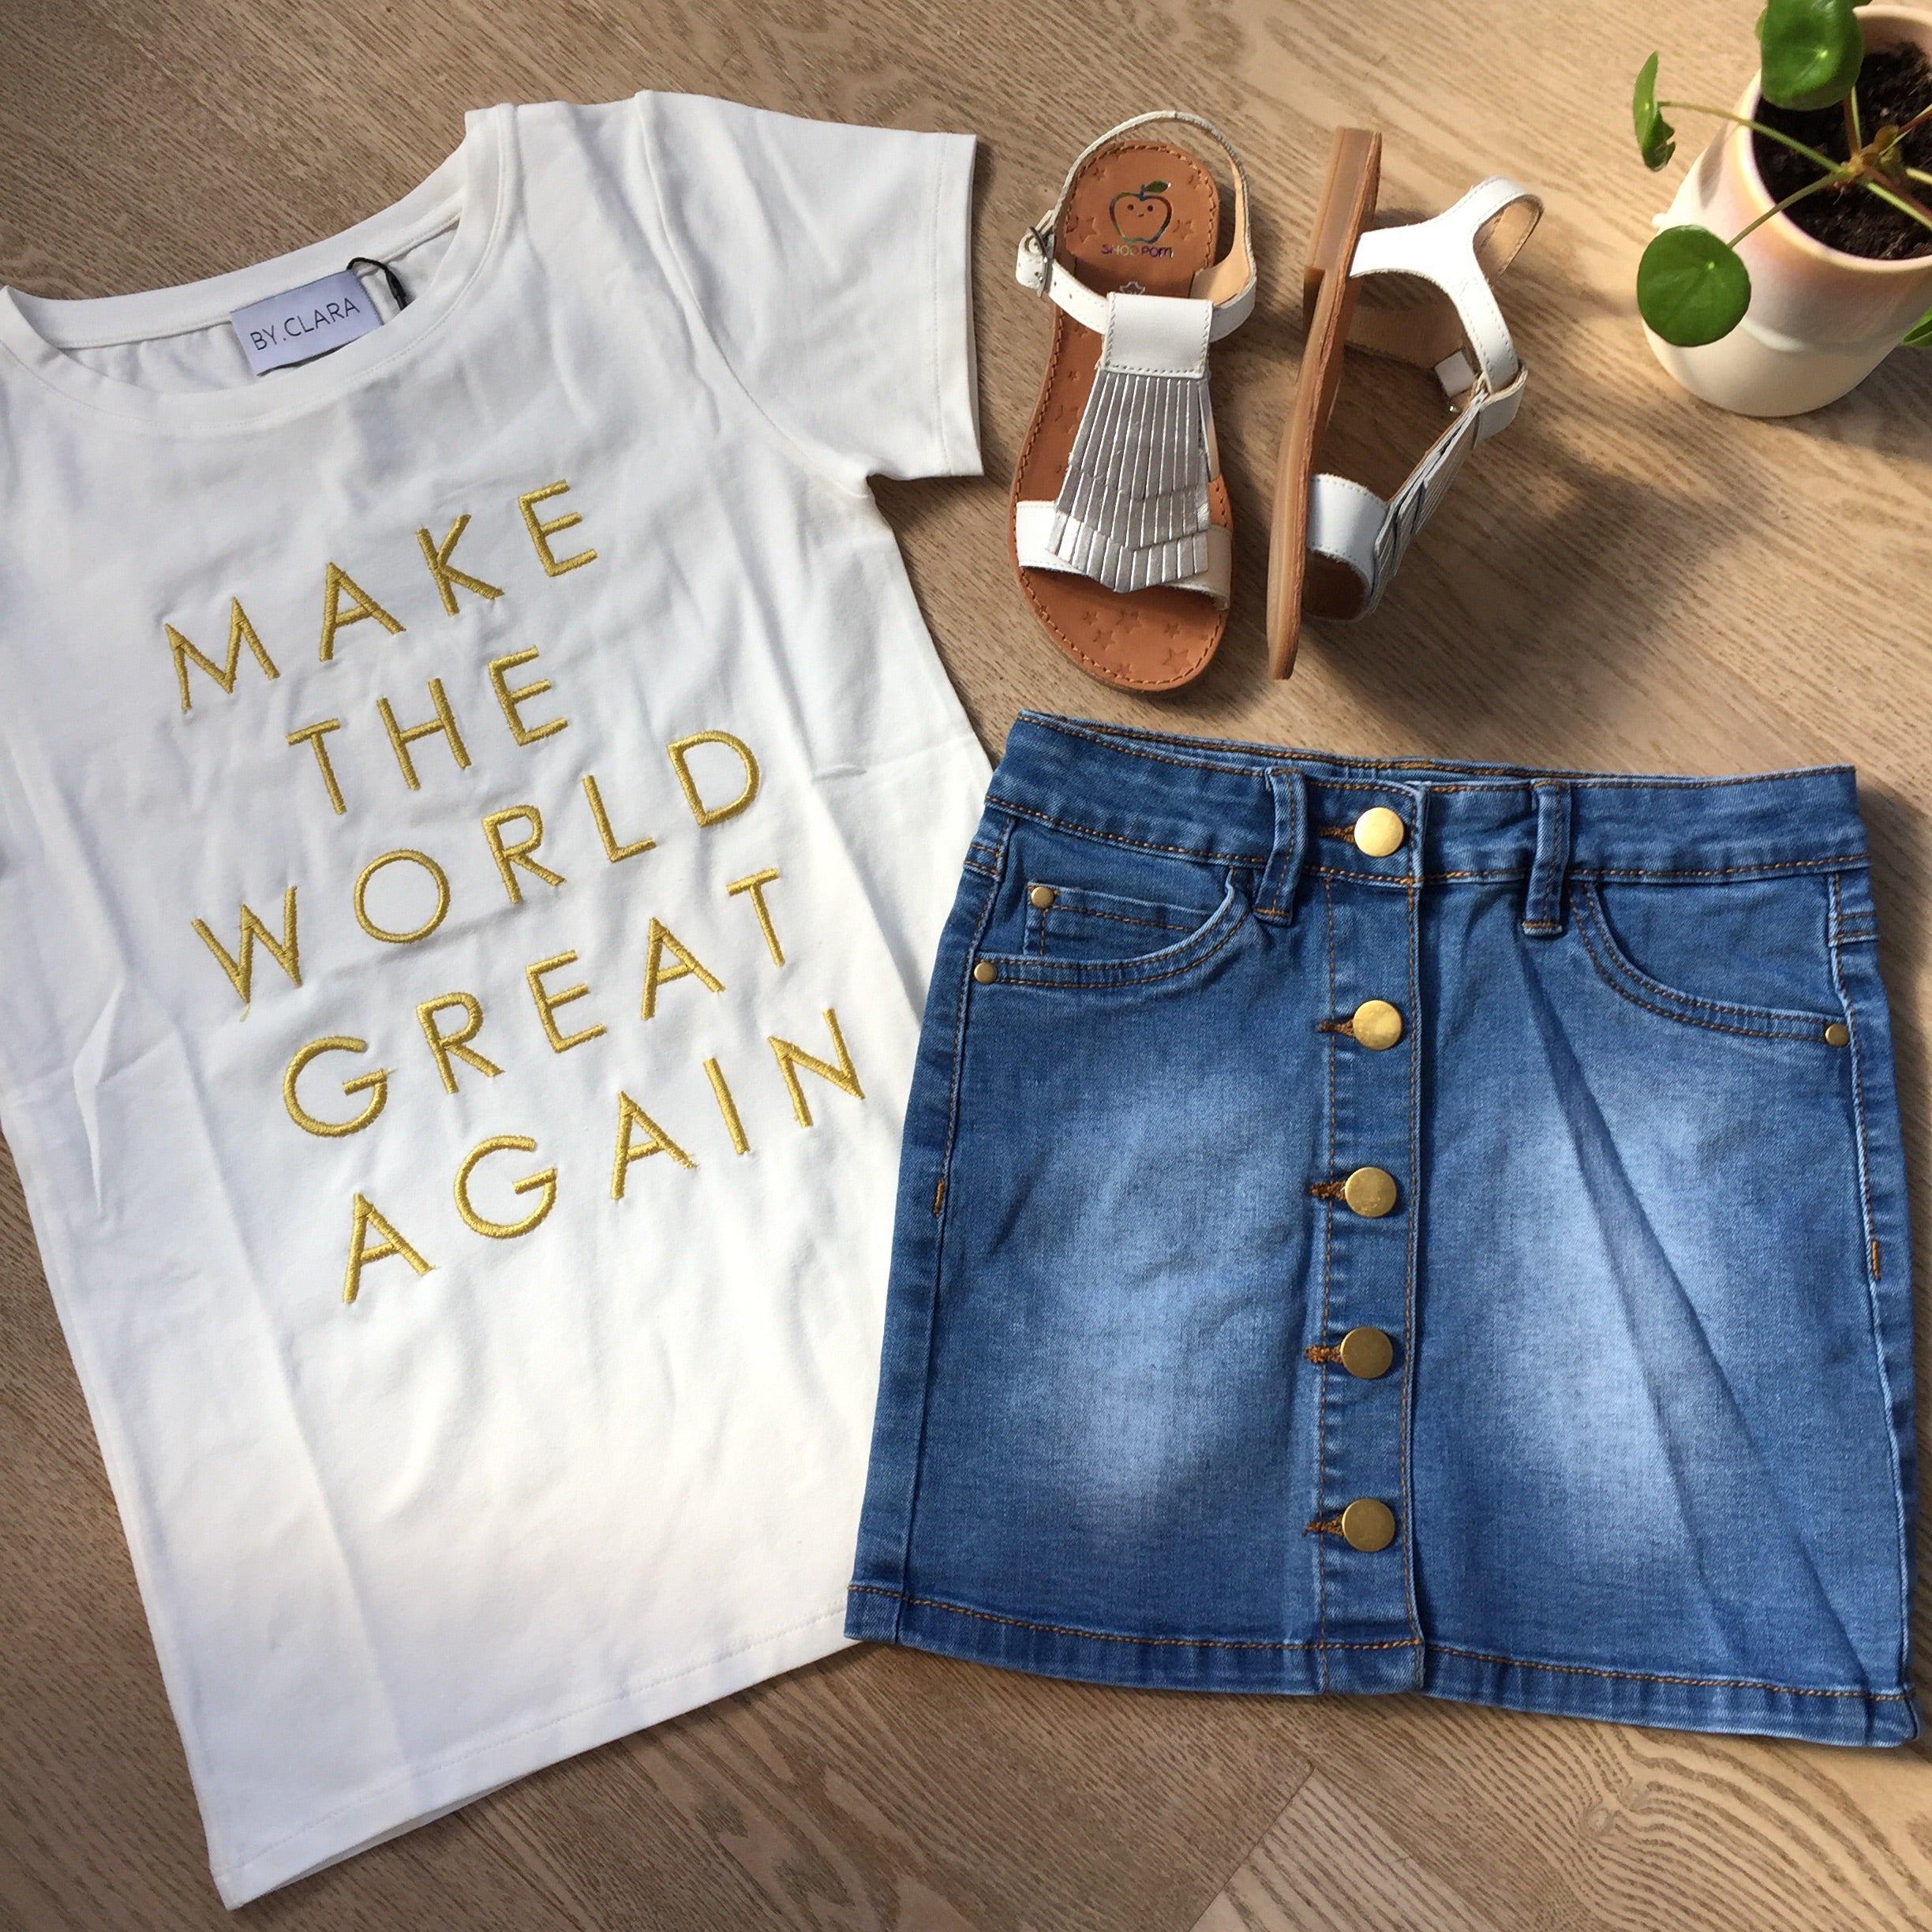 byClaRa - T-shirt, Make The World Great Again - Ivory